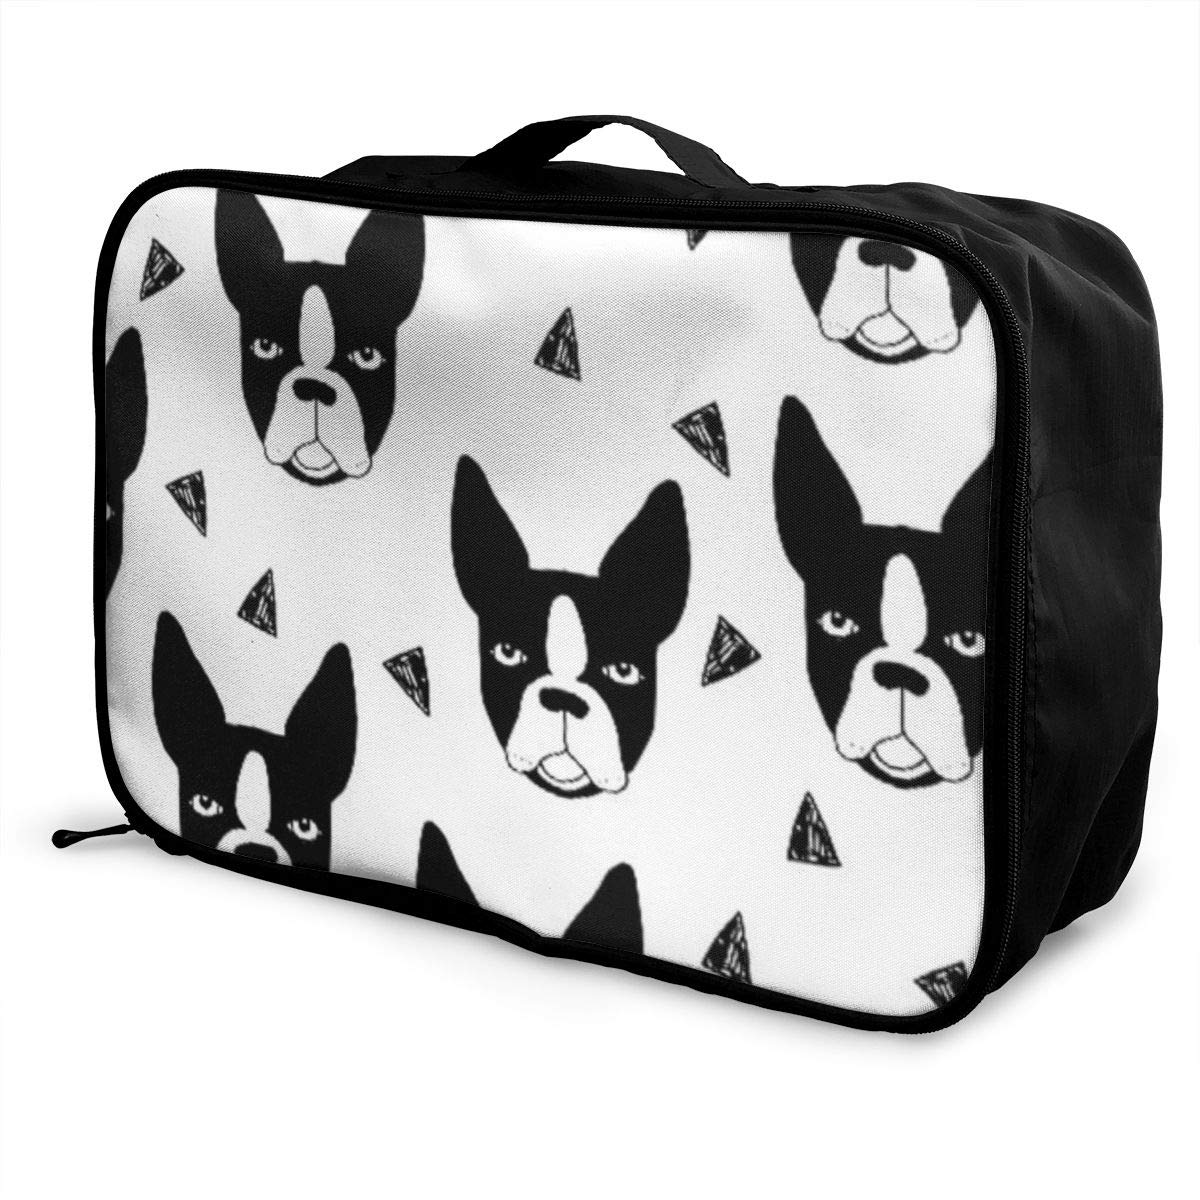 Boston Terrier Dog Travel Lightweight Waterproof Foldable Storage Portable Luggage Duffle Tote Bag Large Capacity In Trolley Handle Bags 6x11x15 Inch